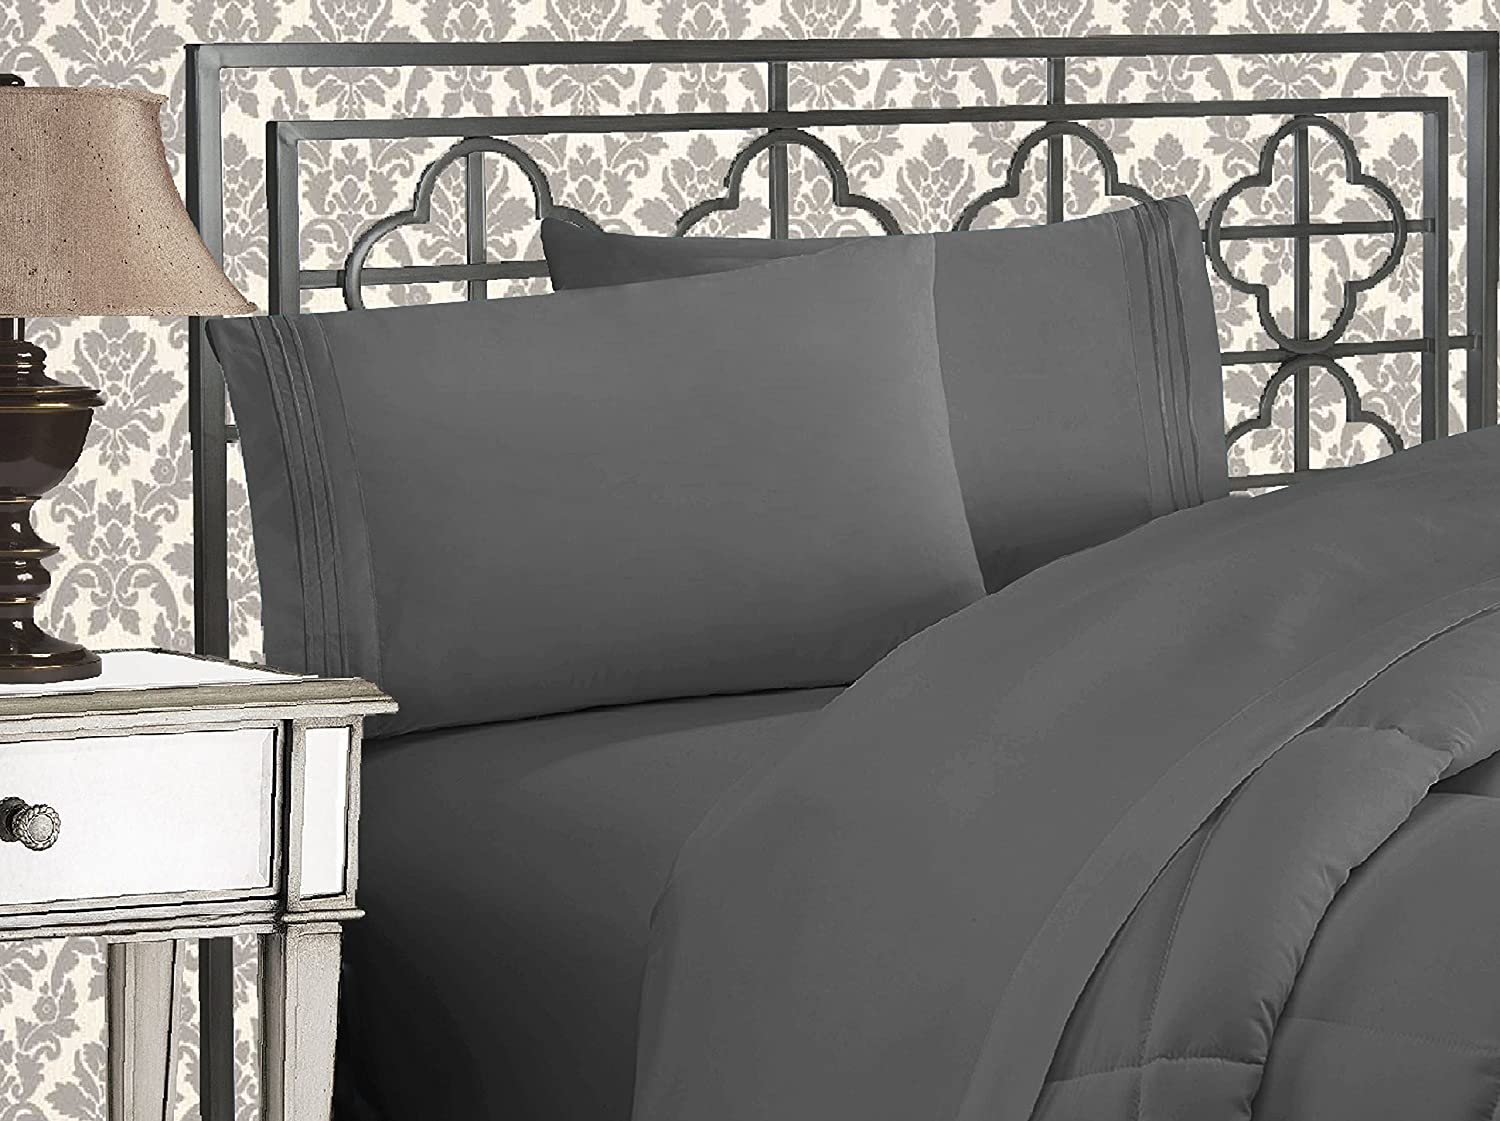 Elegant Comfort Luxurious 1500 Thread Count Egyptian Three Line Embroidered Softest Premium Hotel Quality 3-Piece Bed Sheet Set, Wrinkle and Fade Resistant, Twin XL, Grey